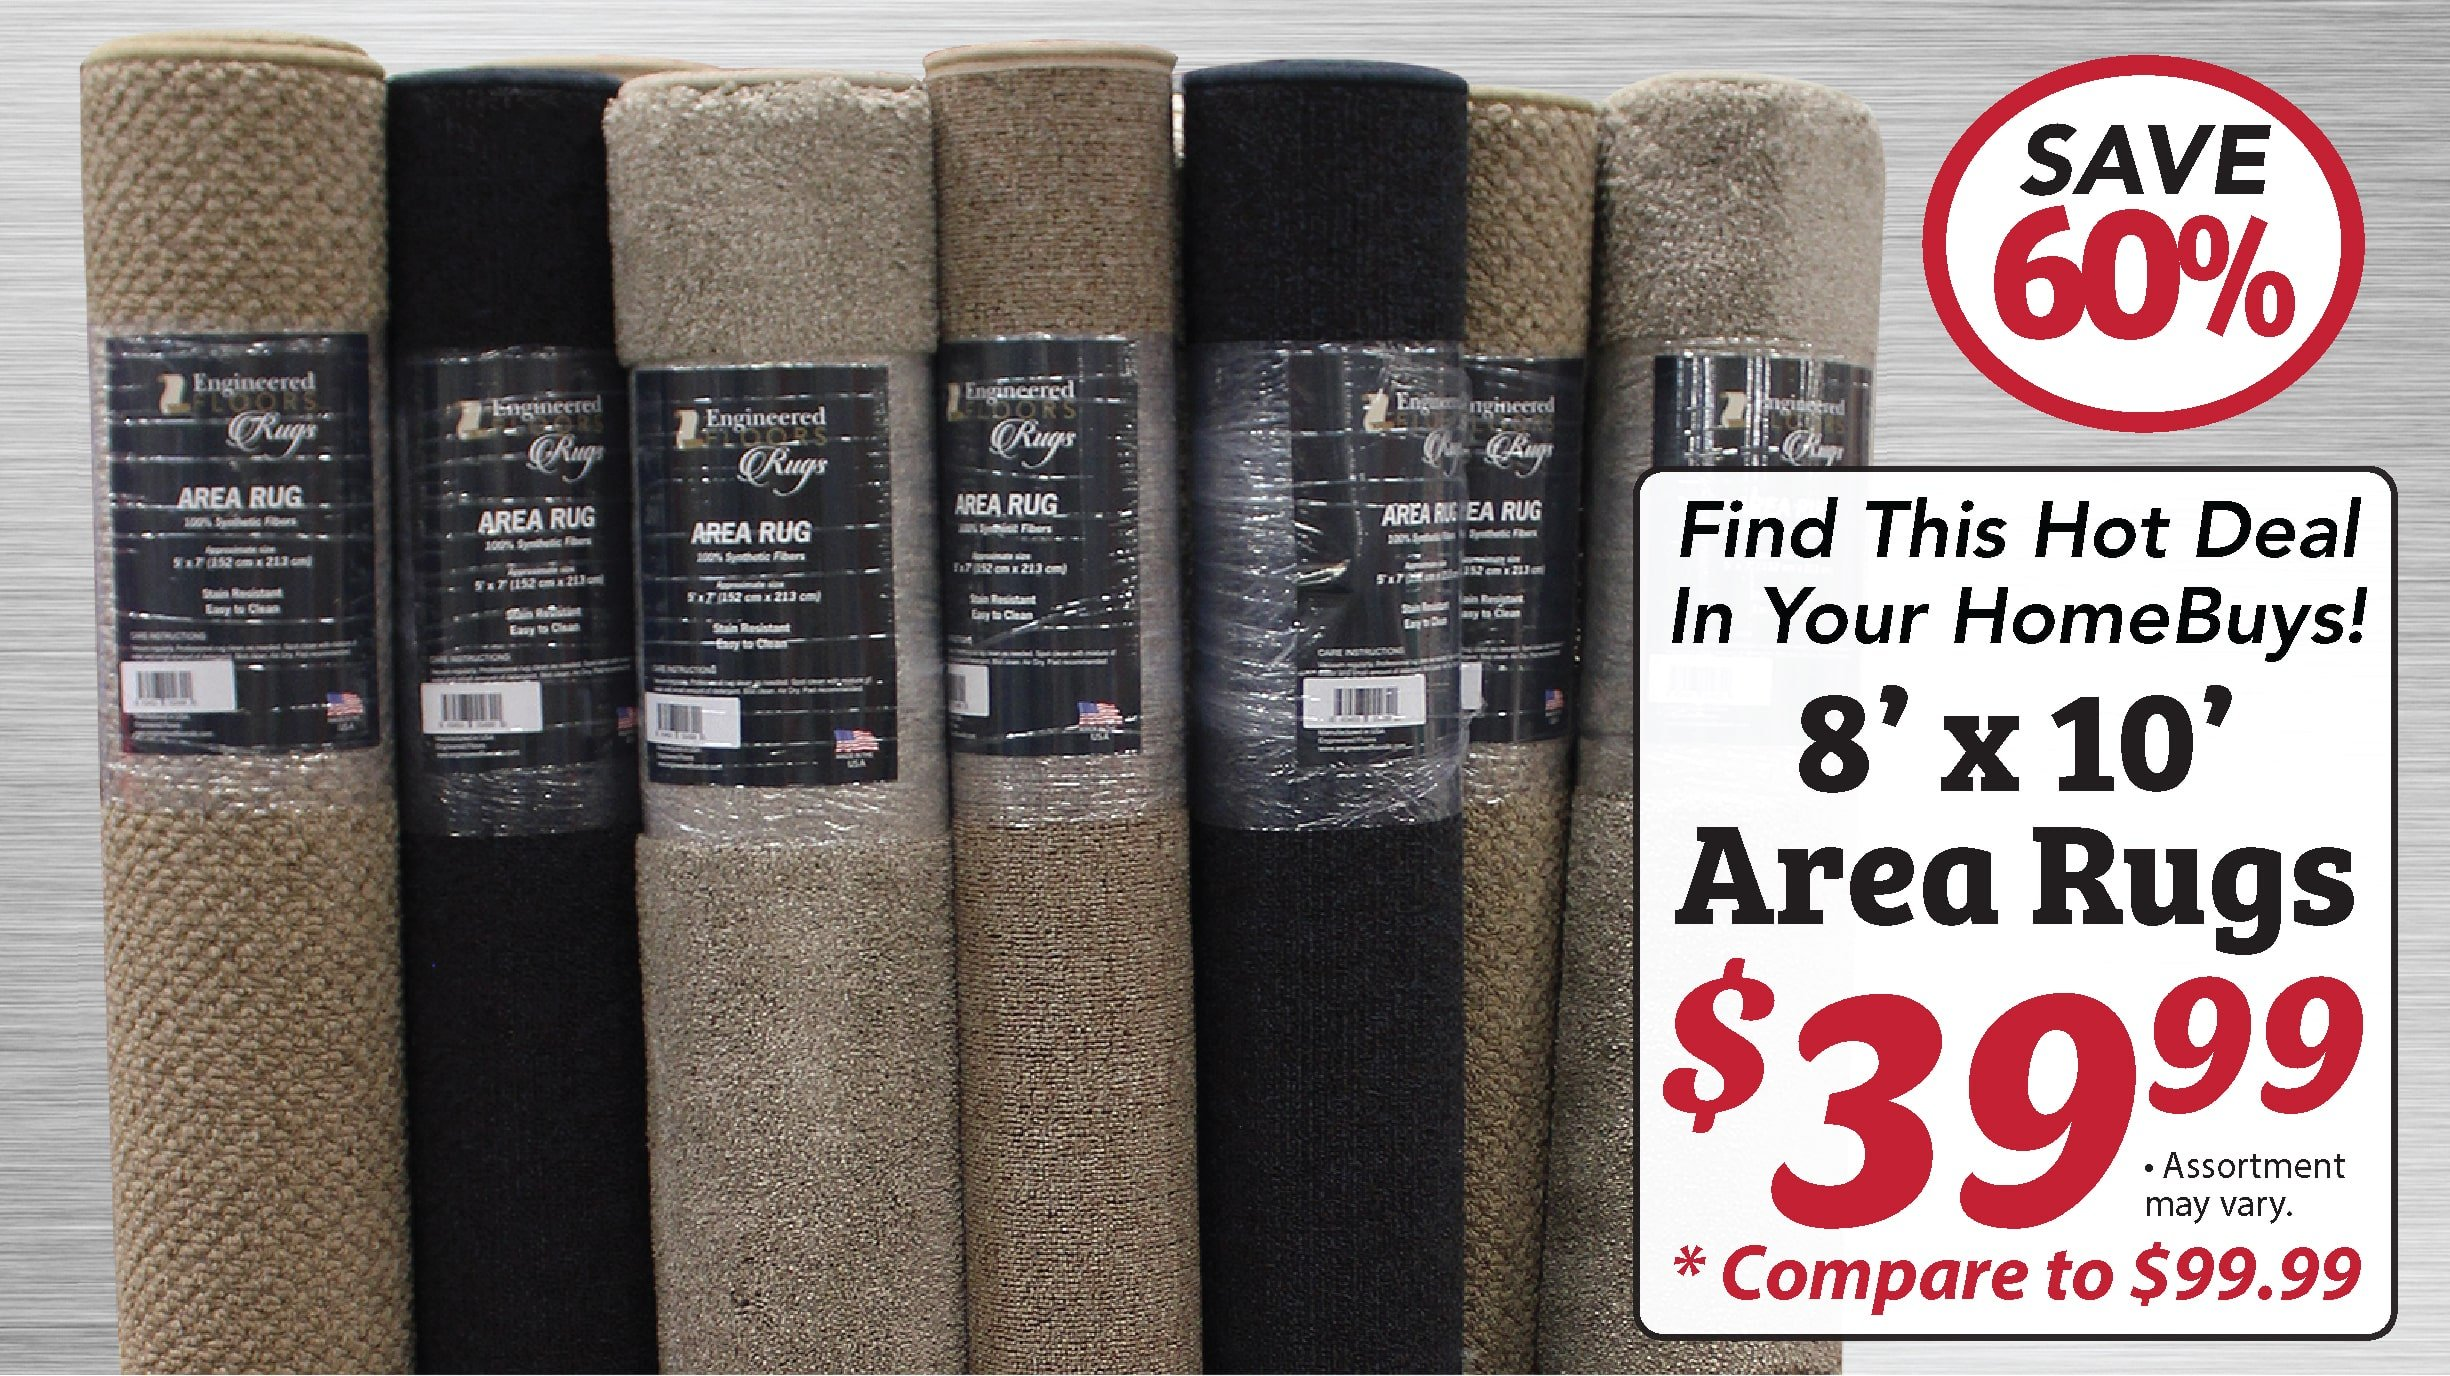 Area Rugs at half the price